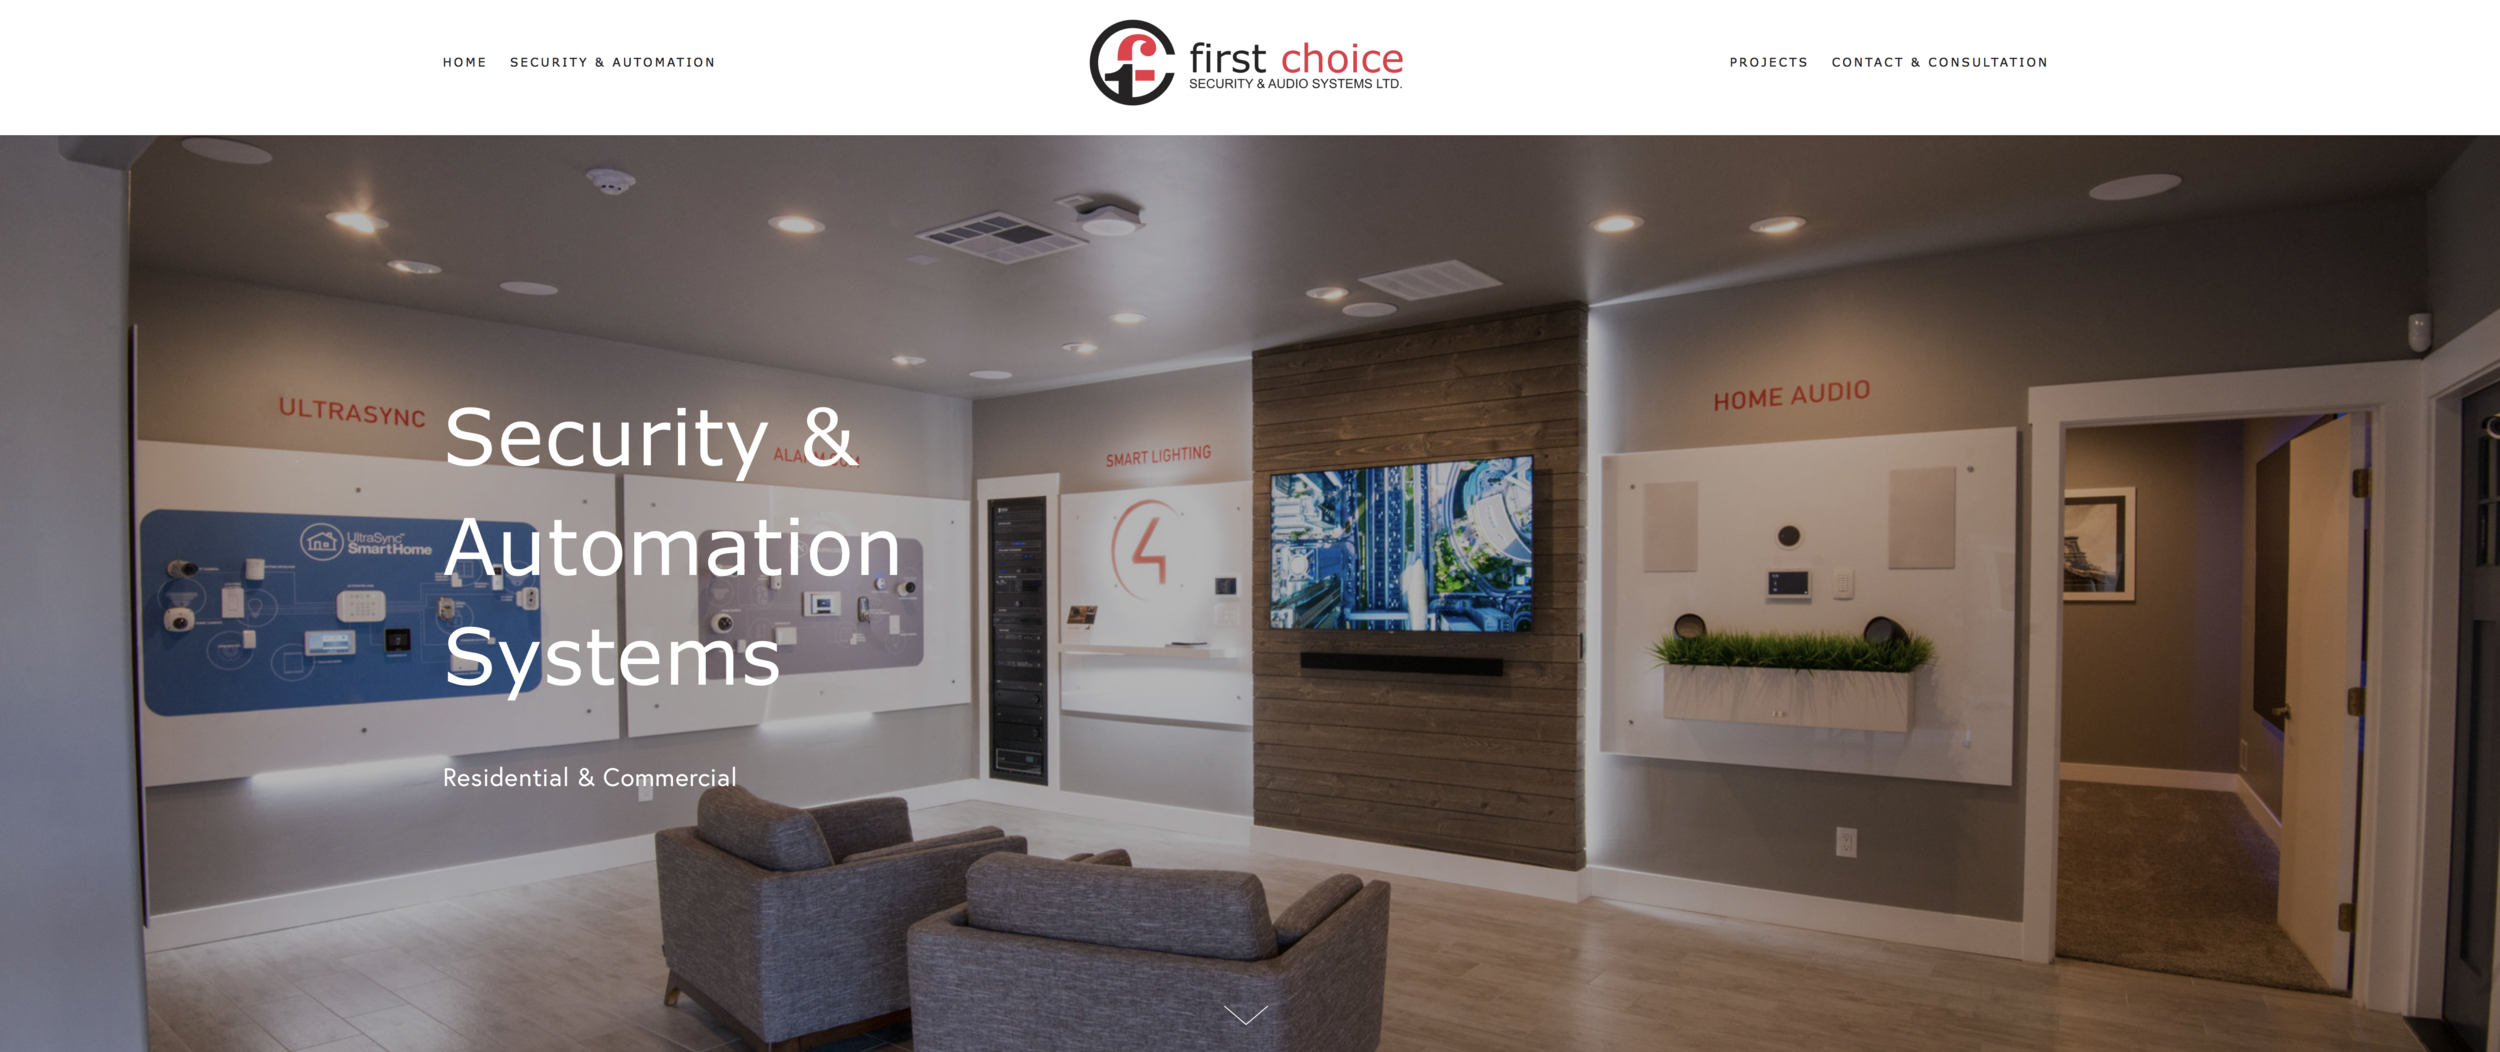 First Choice Security & Audio Systems Ltd - Donna Halme Designs was contracted by First Choice Security & Audio Systems Ltd to design a website for their company. The website was designed to easily and professionally display information about their company, the services they offer, plus the residential and commercial projects they have completed over their many years in business. They wanted a website that was more than just a presence but not too many pages. This website was designed so that it was easy to navigate and provide valuable information about their services and projects. It was suggested that they set up their own instagram account and start taking photos of their completed projects to post on Instagram. That way, they would have the latest images of the projects they do for their clients. In addition, I connected their present domain to their new site making sure their present email accounts were intact, and created a Facebook cover image for their page. This was their Previous Website Design.